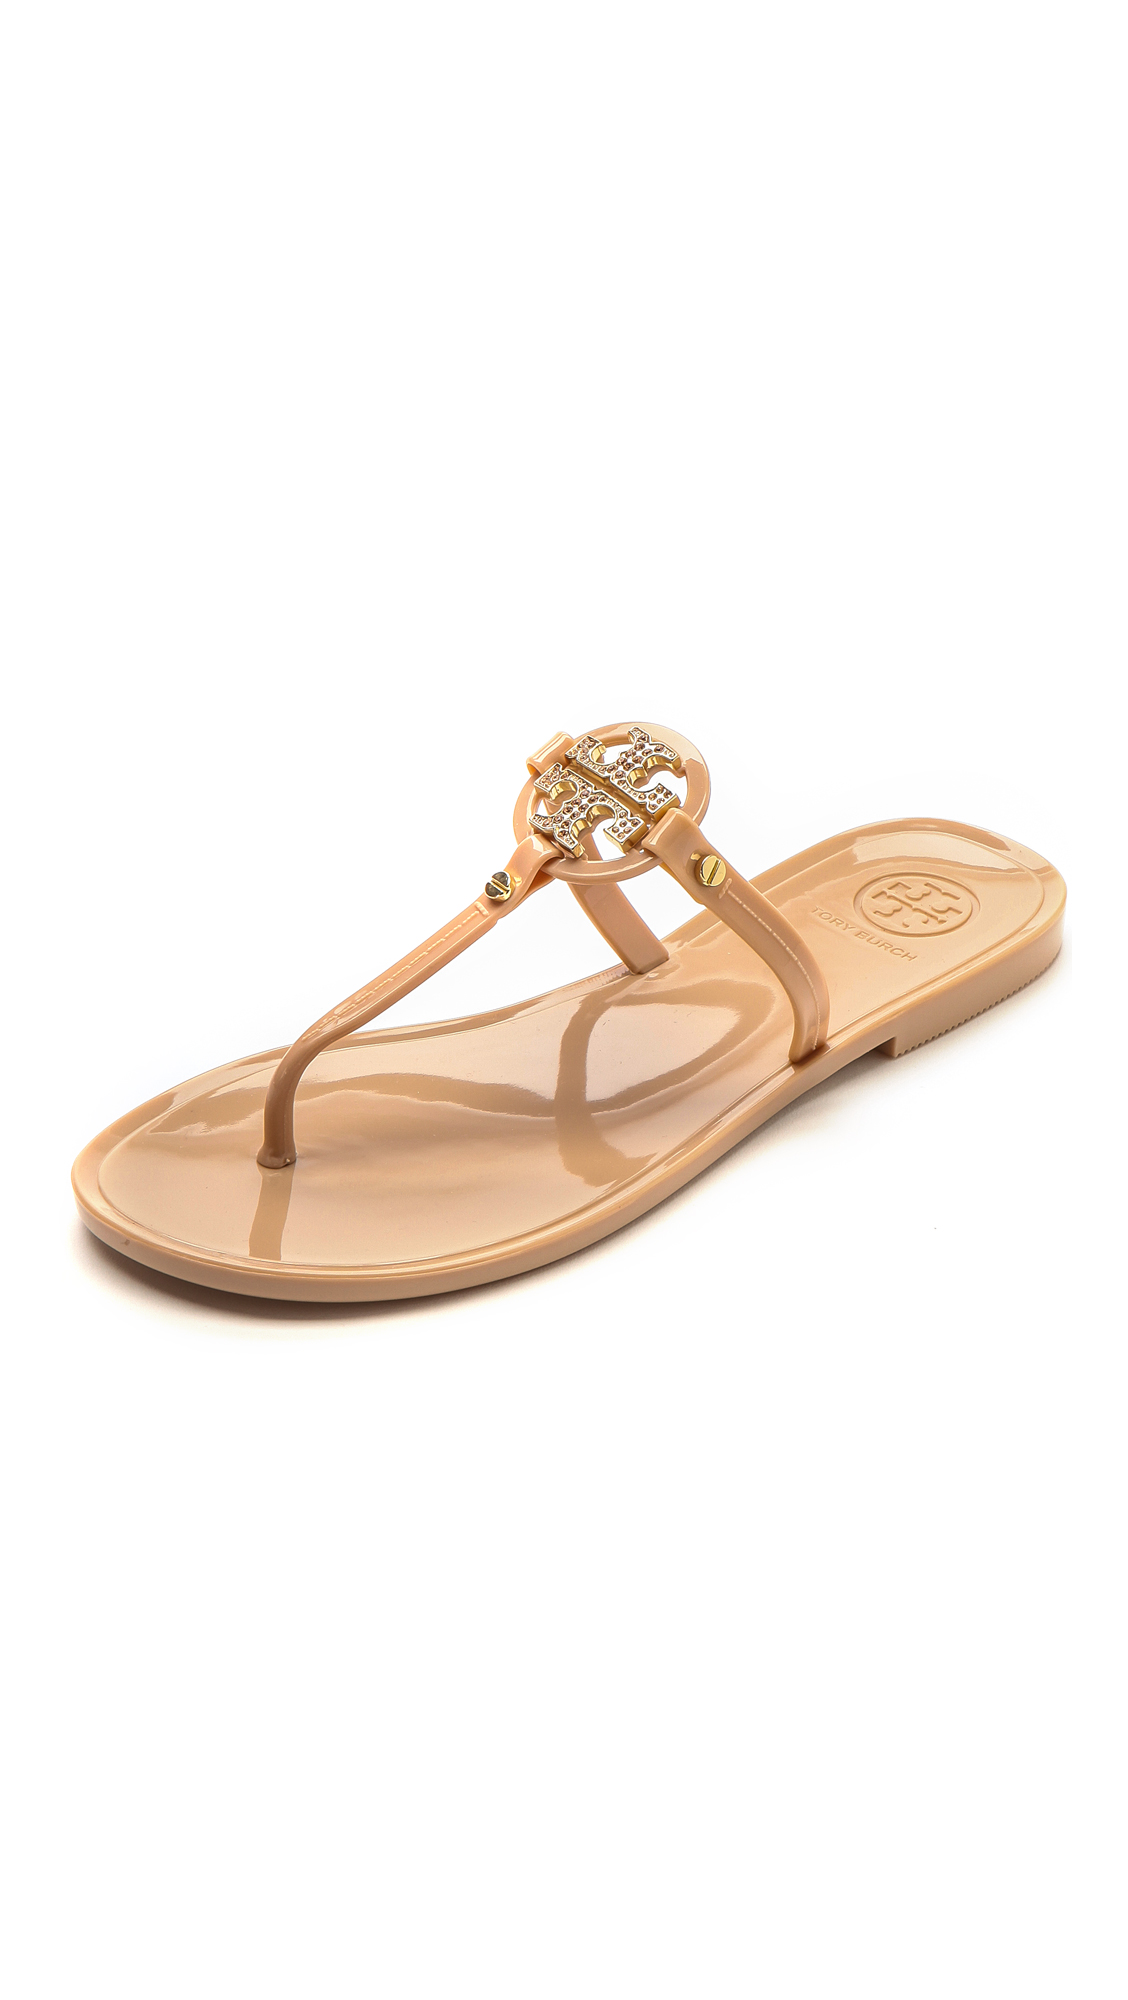 71242d84ce6 Tory Burch Mini Miller Flat Thong Sandals